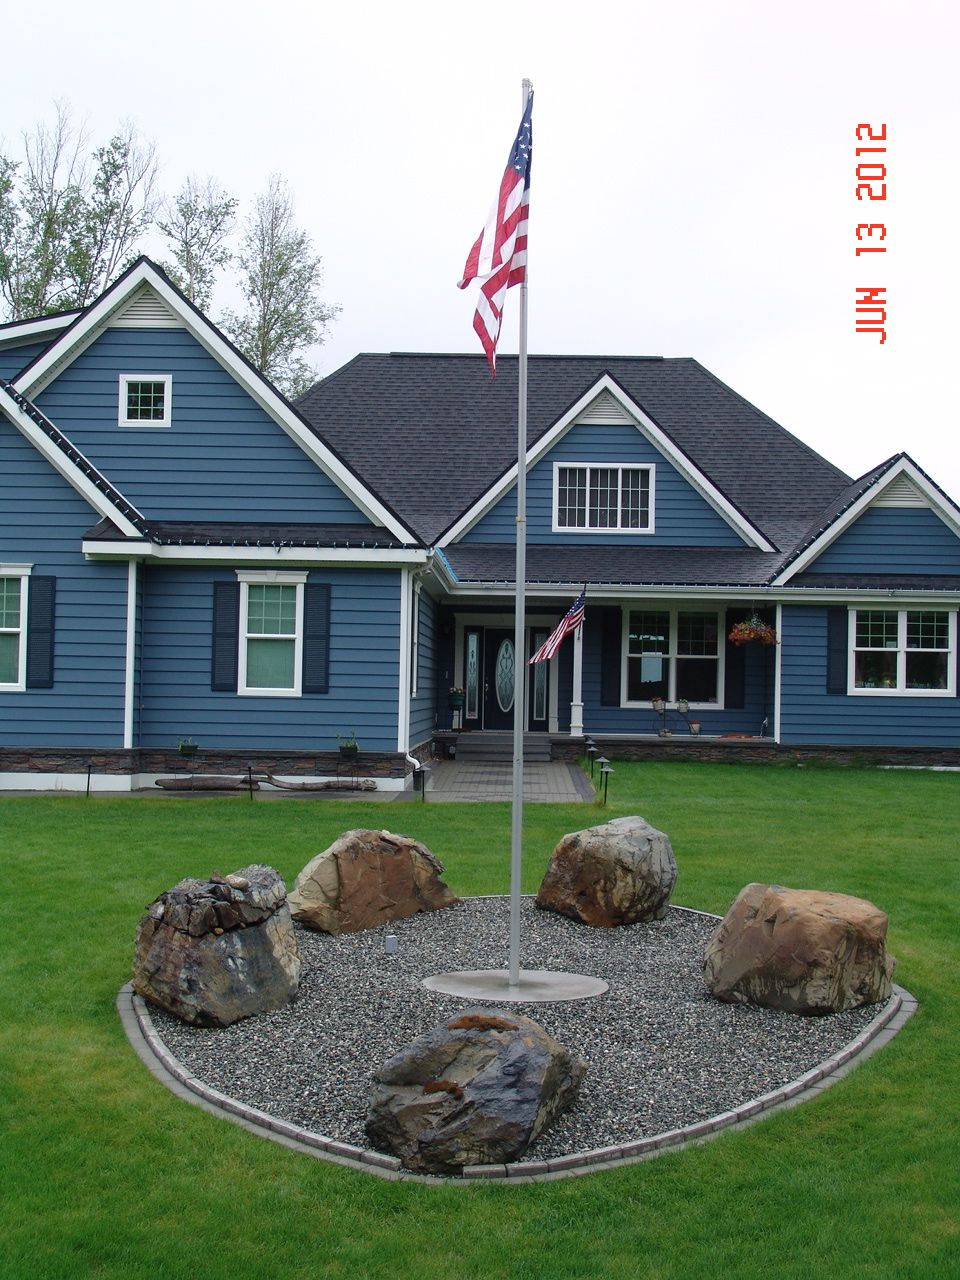 Pin By Alan Benoit On Great Home Ideas Flag Pole Landscaping Front Yard Small Yard Landscaping